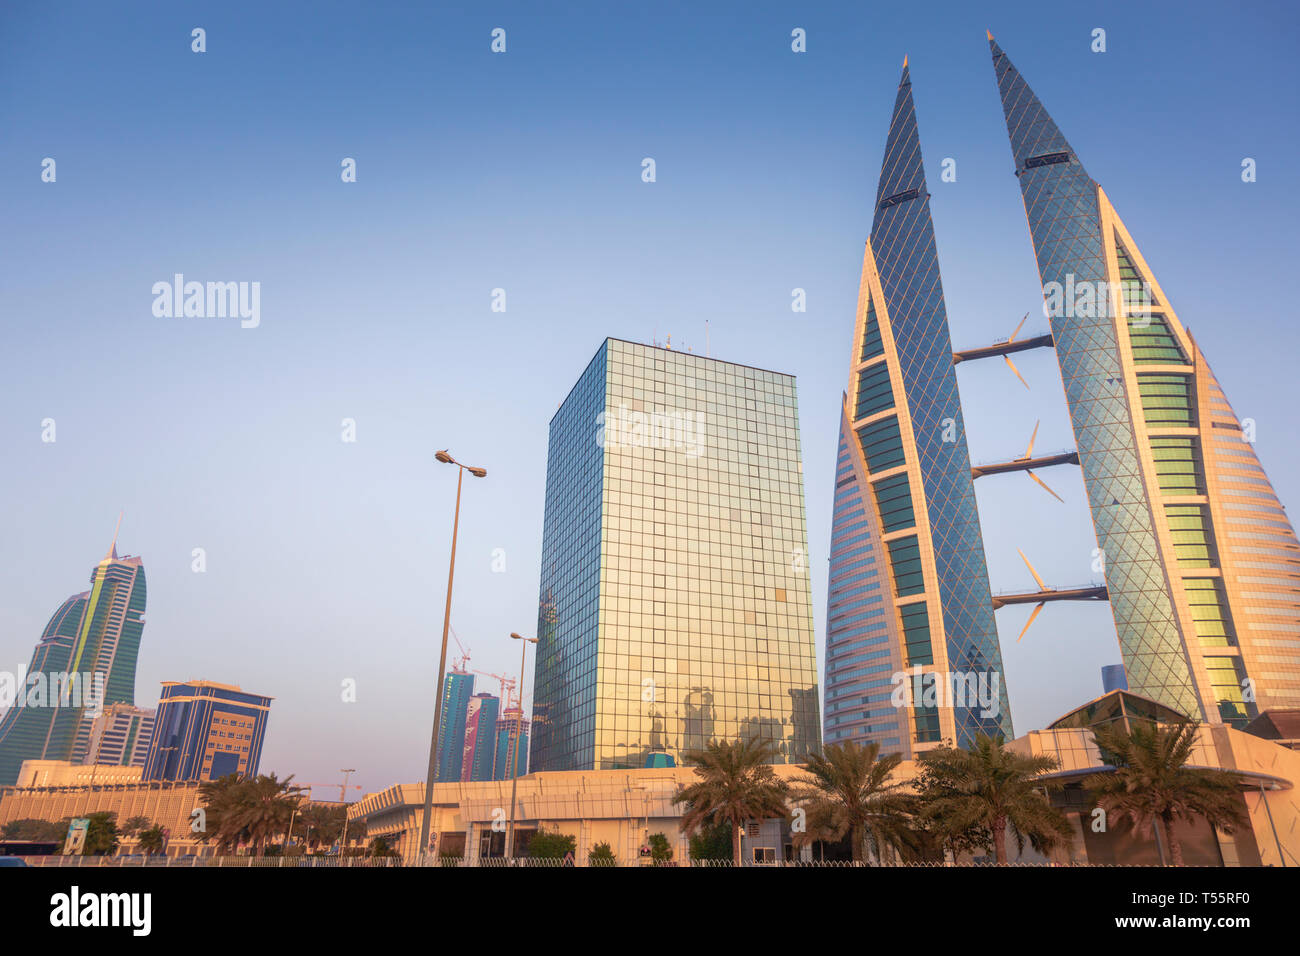 Low angle view of Bahrain World Trade Center in Manama, Bahrain - Stock Image